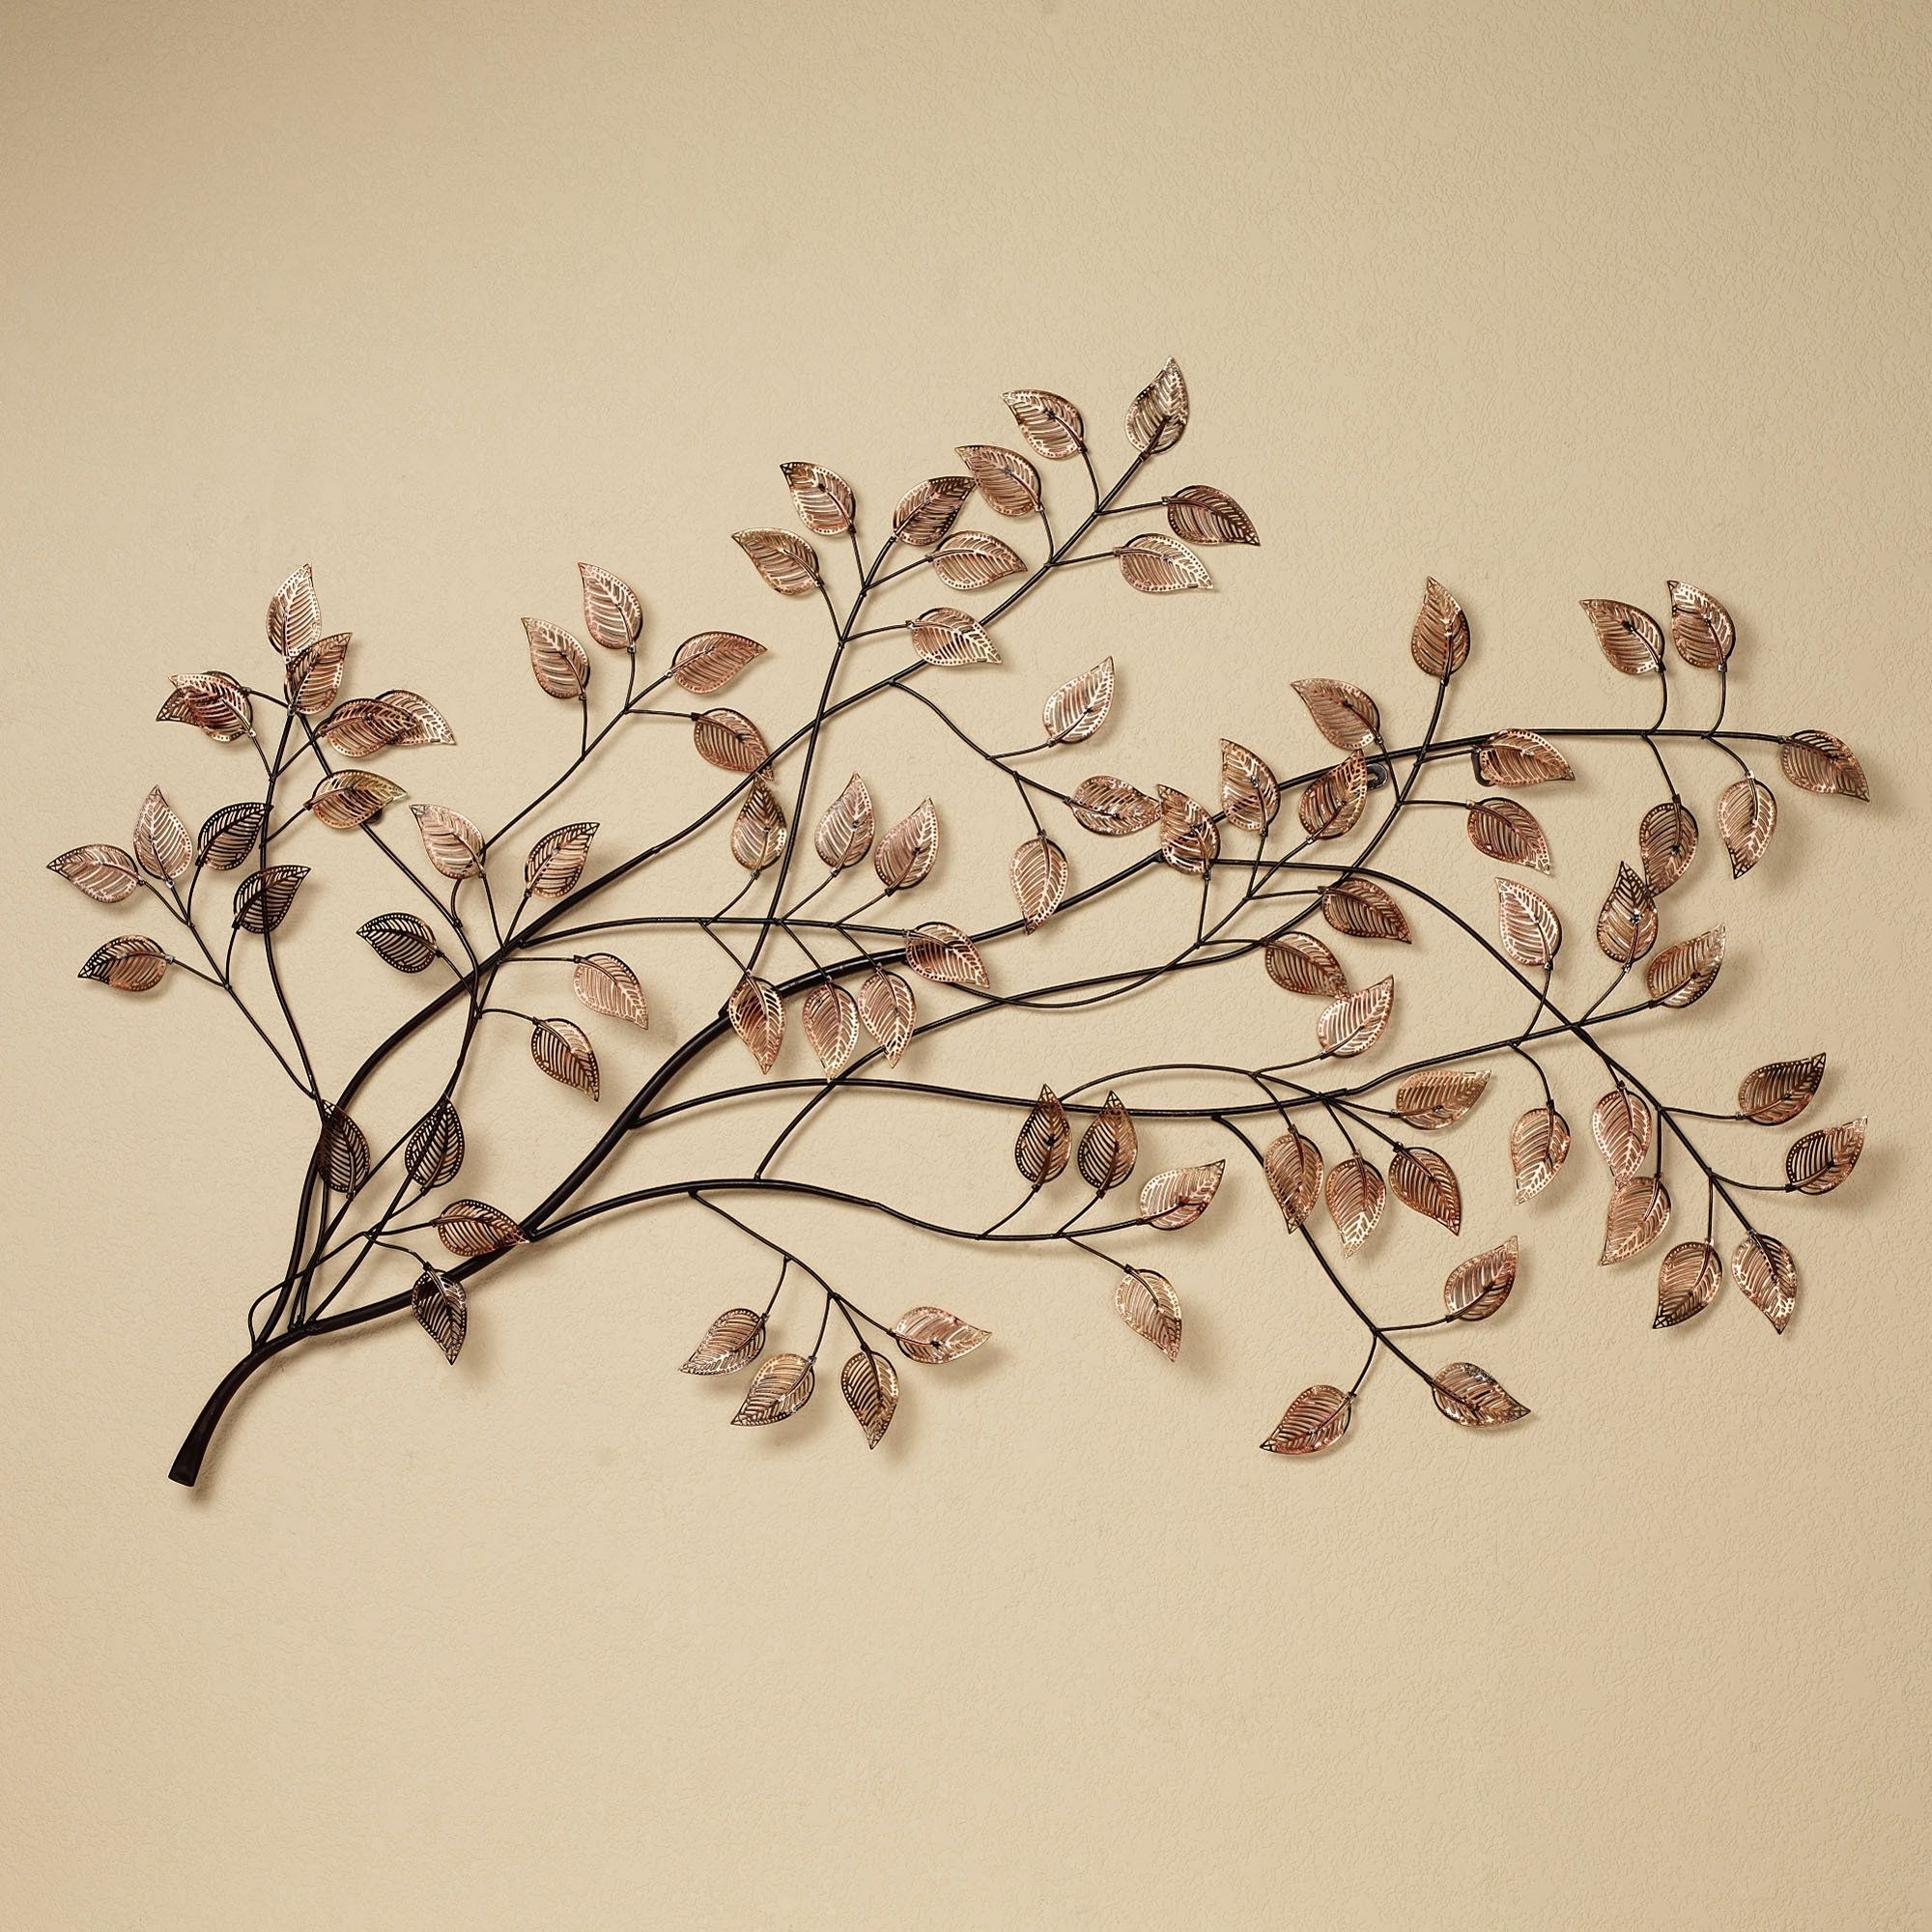 Branches At Sunrise Leaf Metal Wall Sculpture | Metal Wall Intended For Best And Newest Abstract Leaf Metal Wall Art (View 3 of 20)